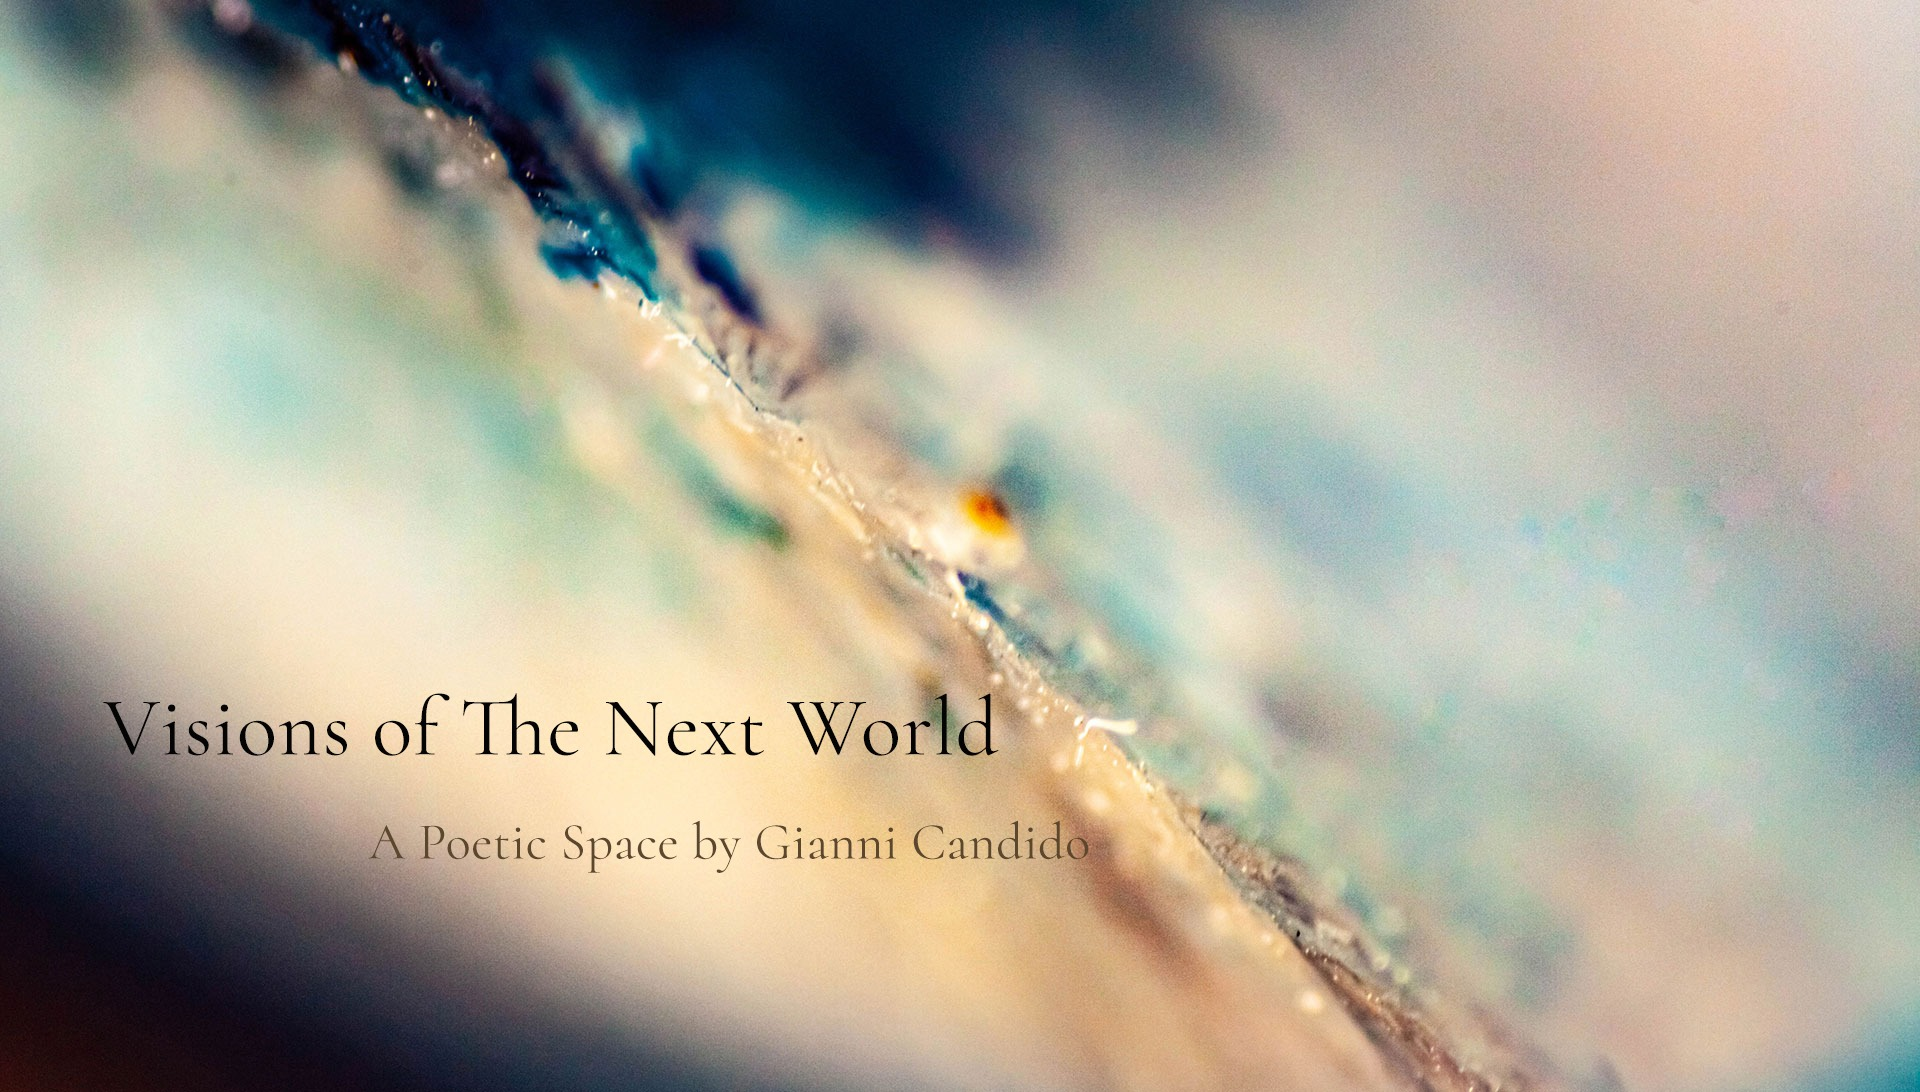 Visions of The Next World - A Poetic Space by Gianni Candido